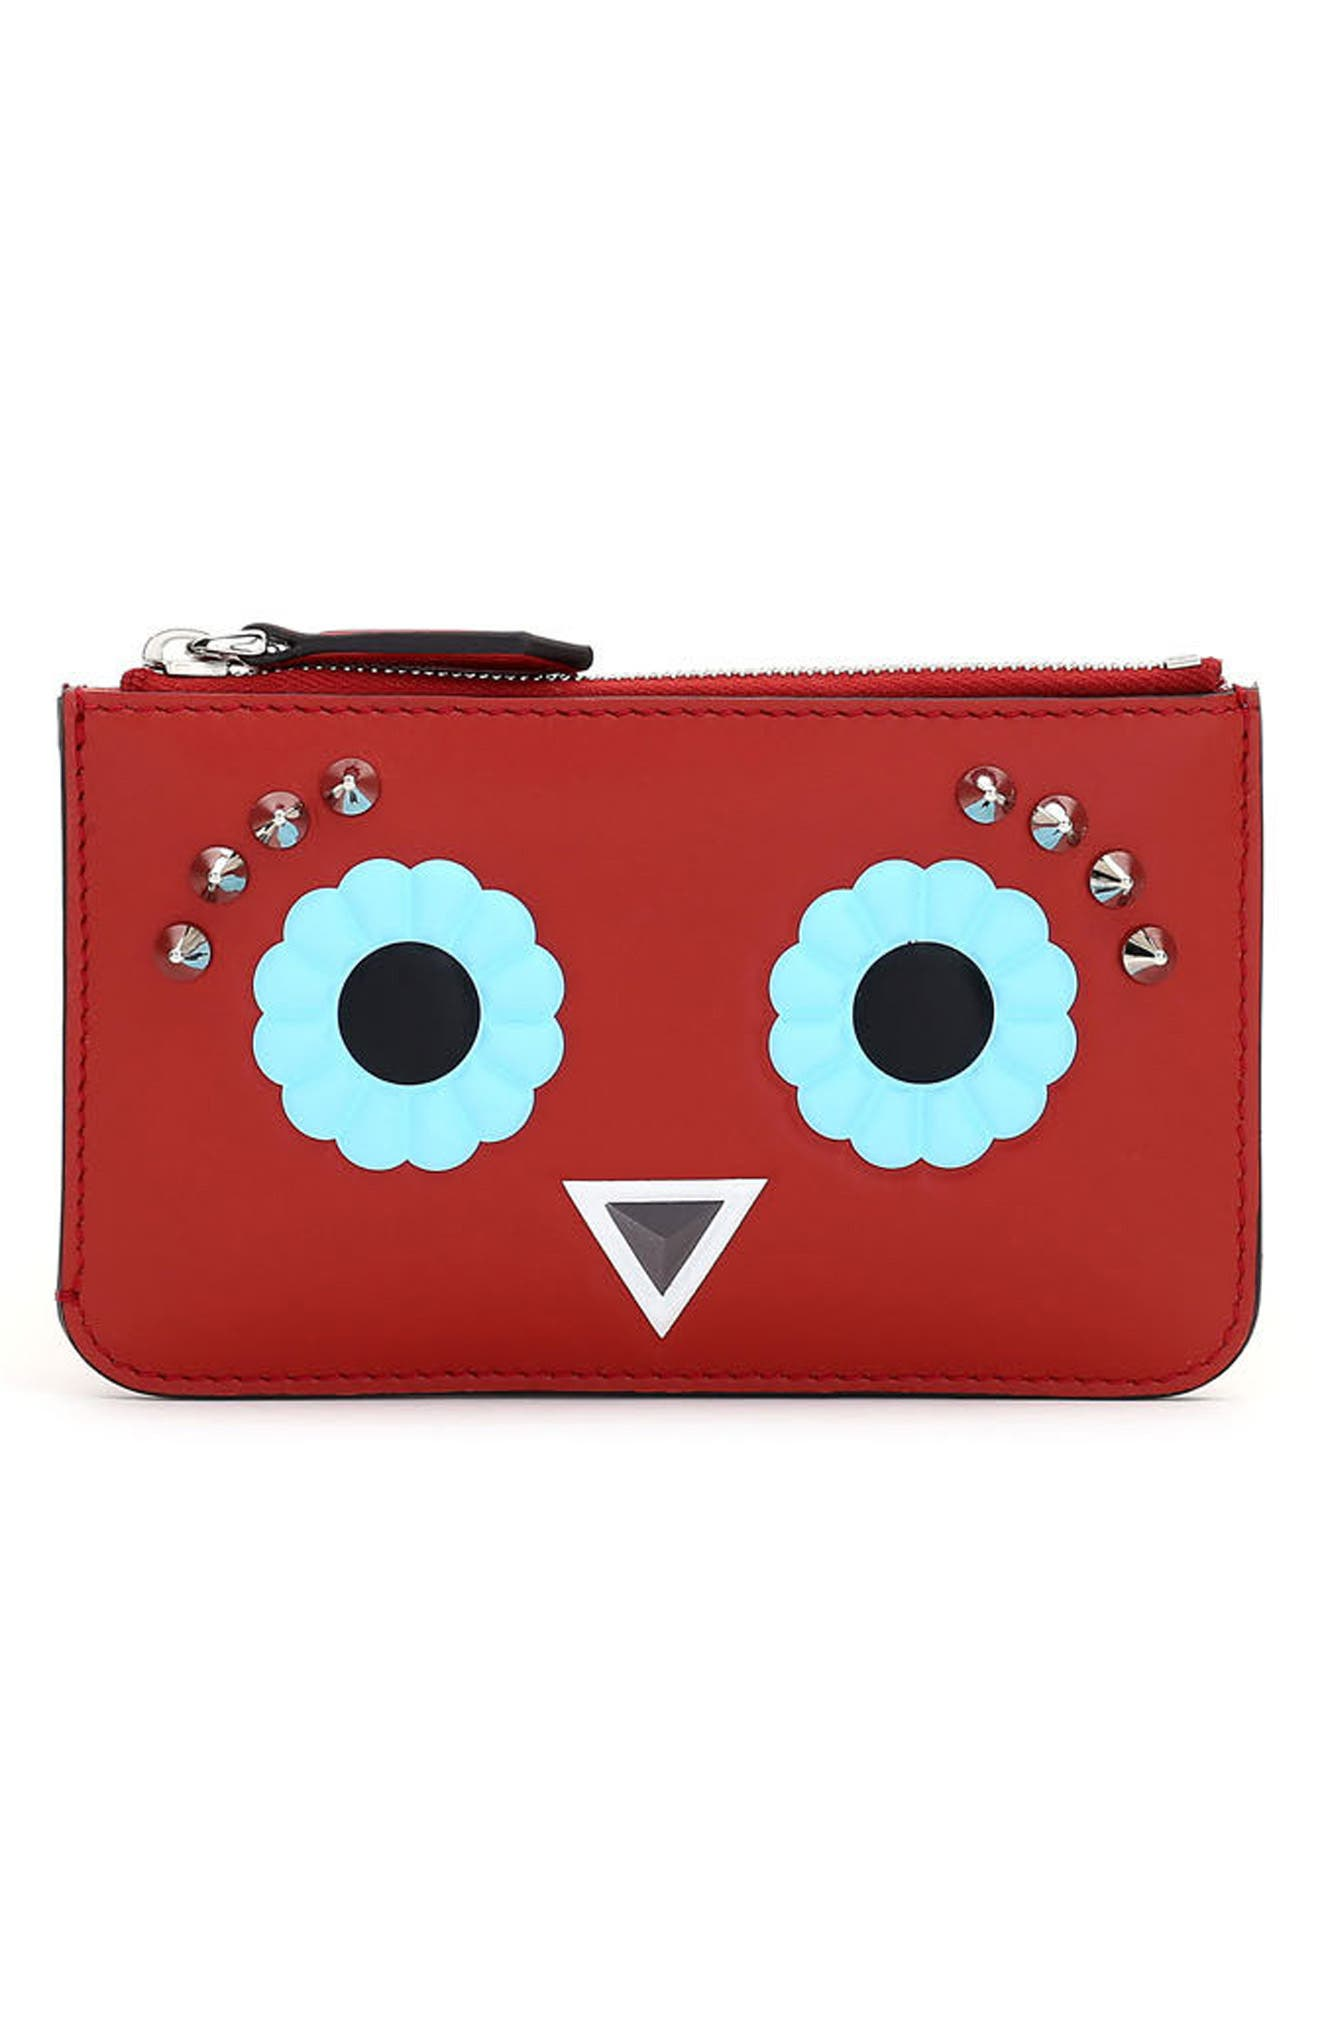 Main Image - Fendi Faces Leather Key Case